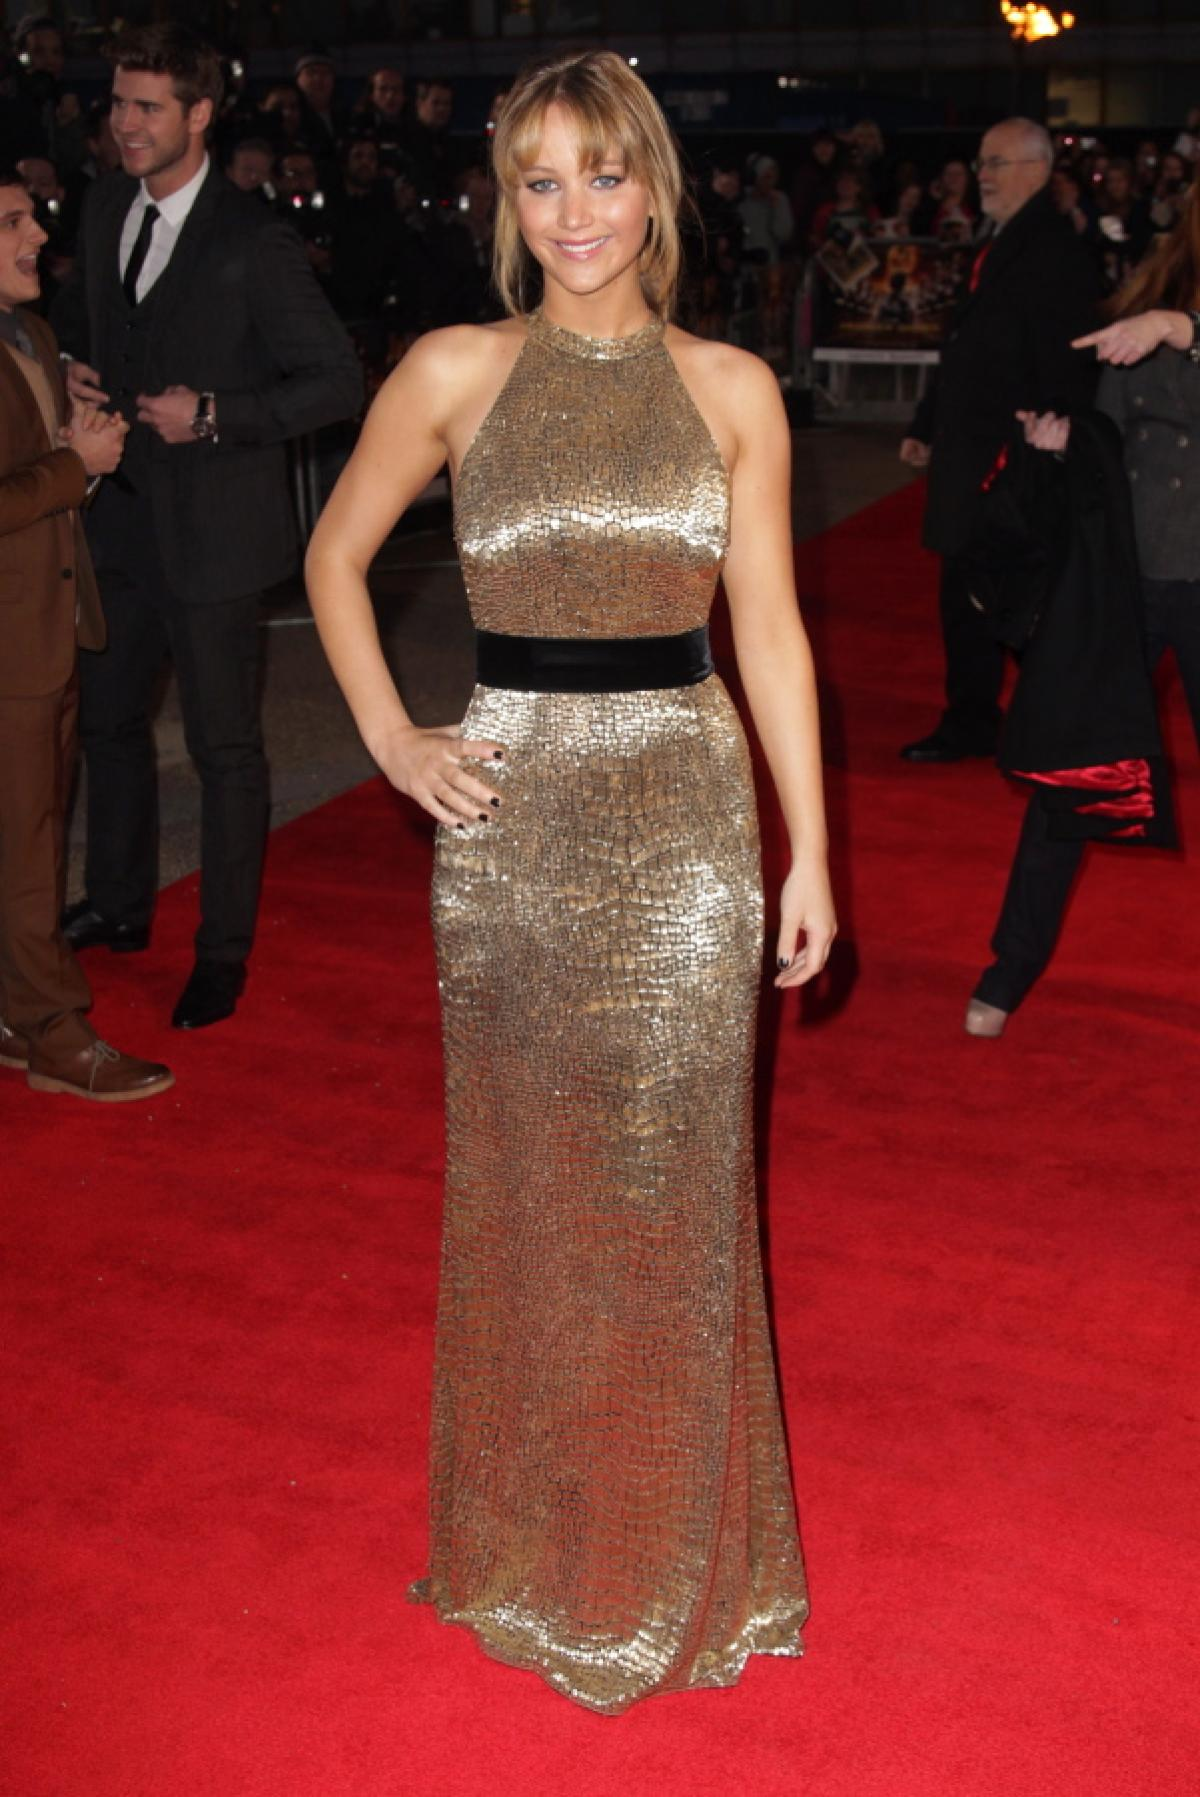 In a sequin strapless dress by Dior at The Screen Actors Guild Awards on Jan 18, 2014